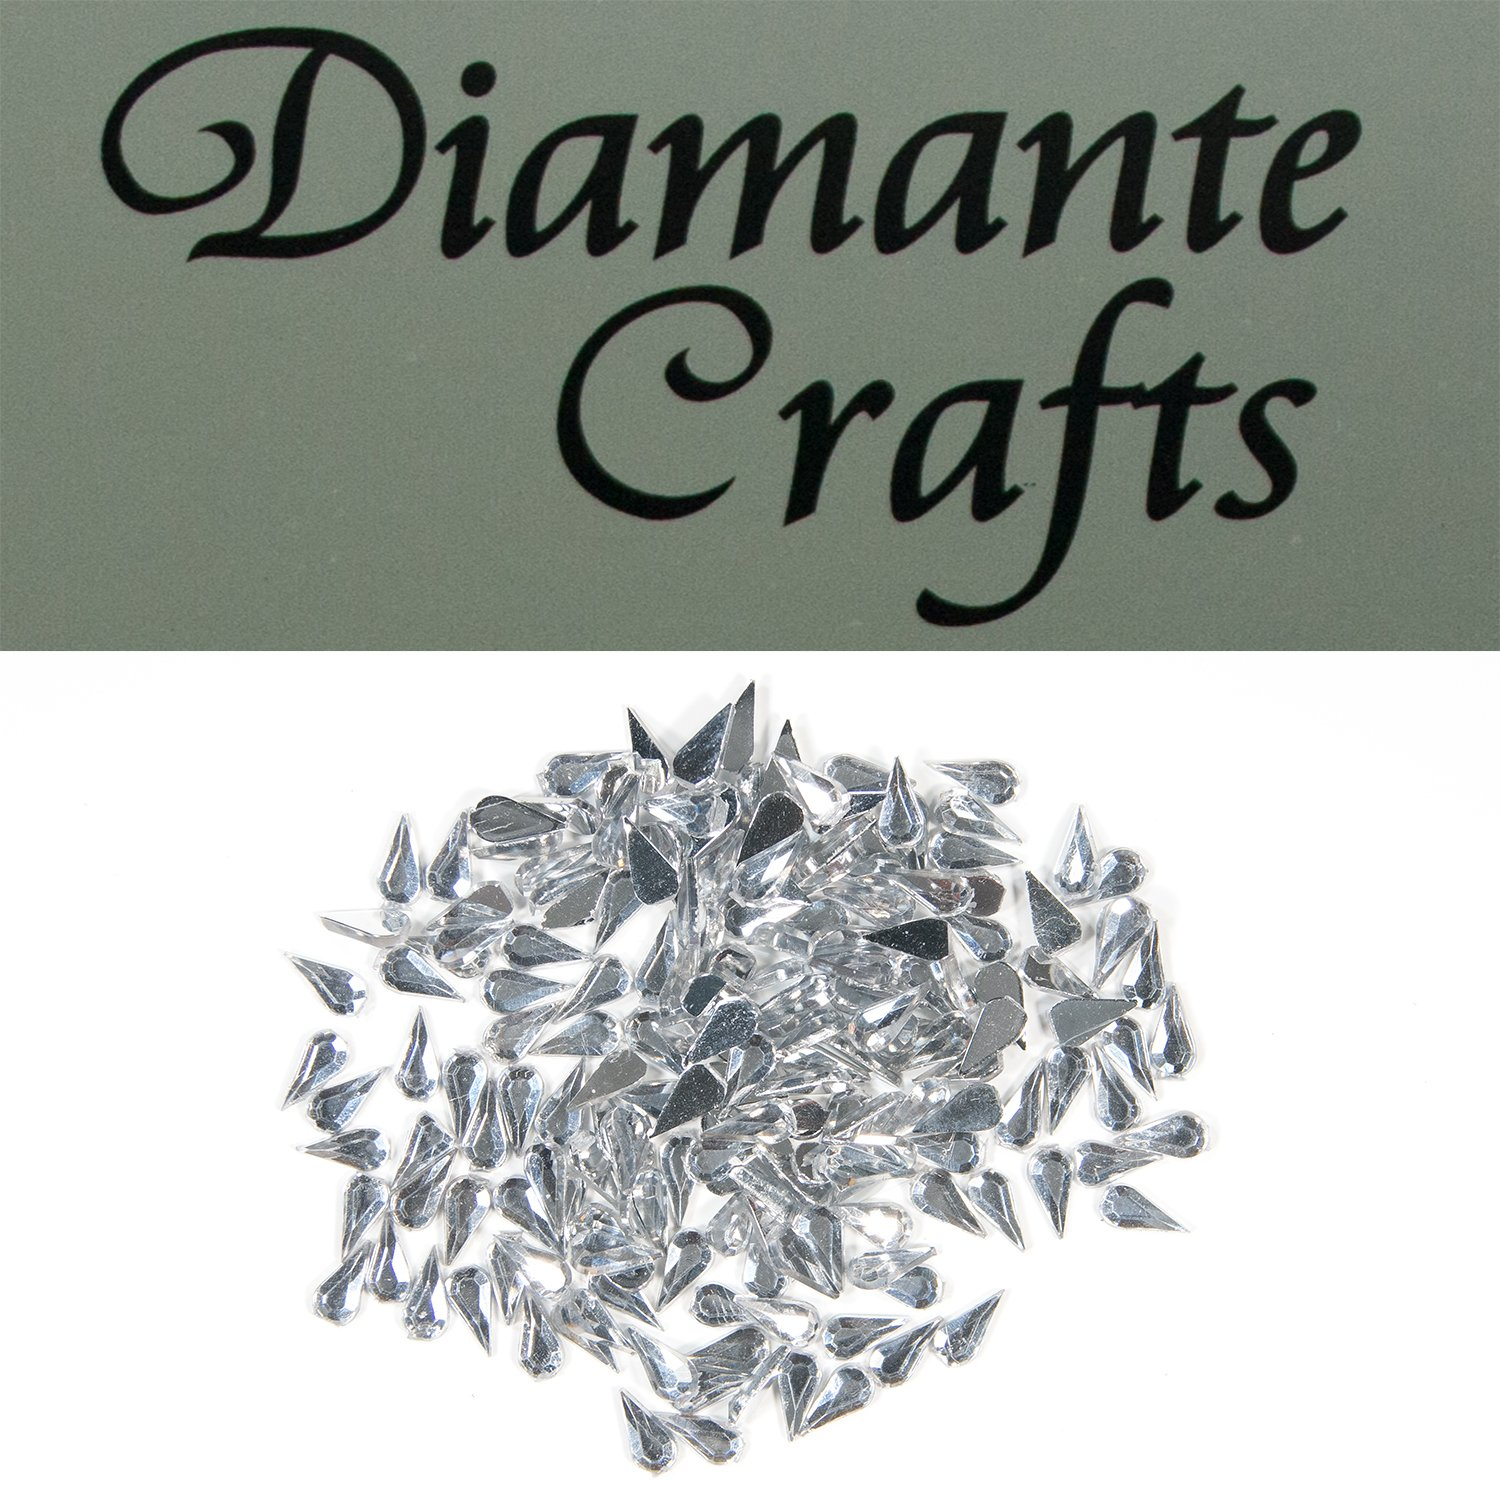 200 x 4mm Clear Teardrops Diamante Loose Flat Back Rhinestone Body Gems - created exclusively for Diamante Crafts